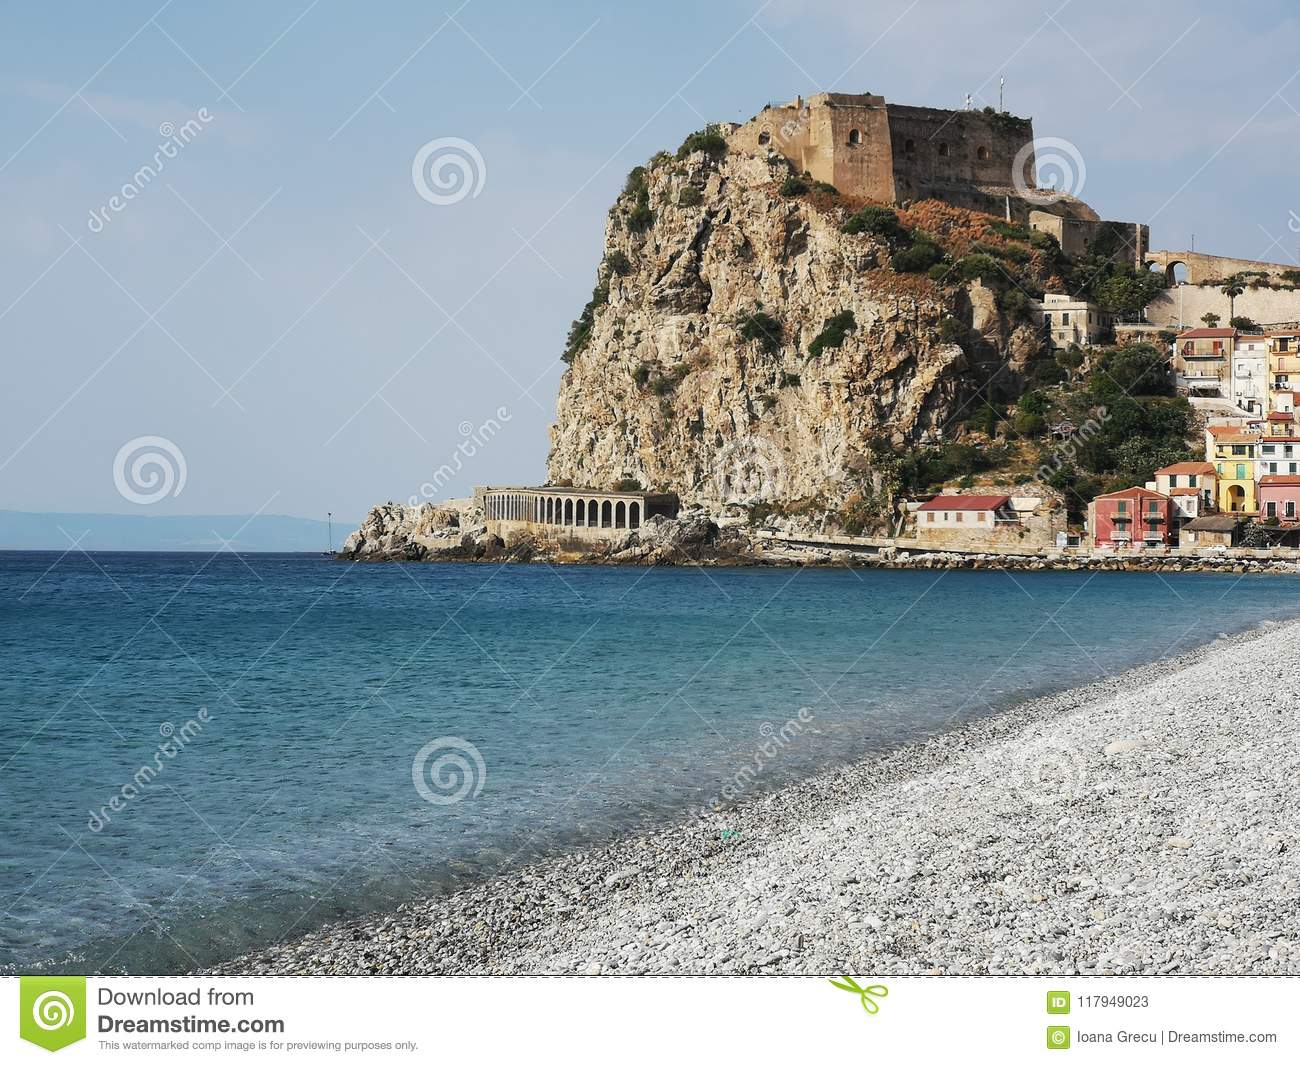 Scilla old historical town, Italy